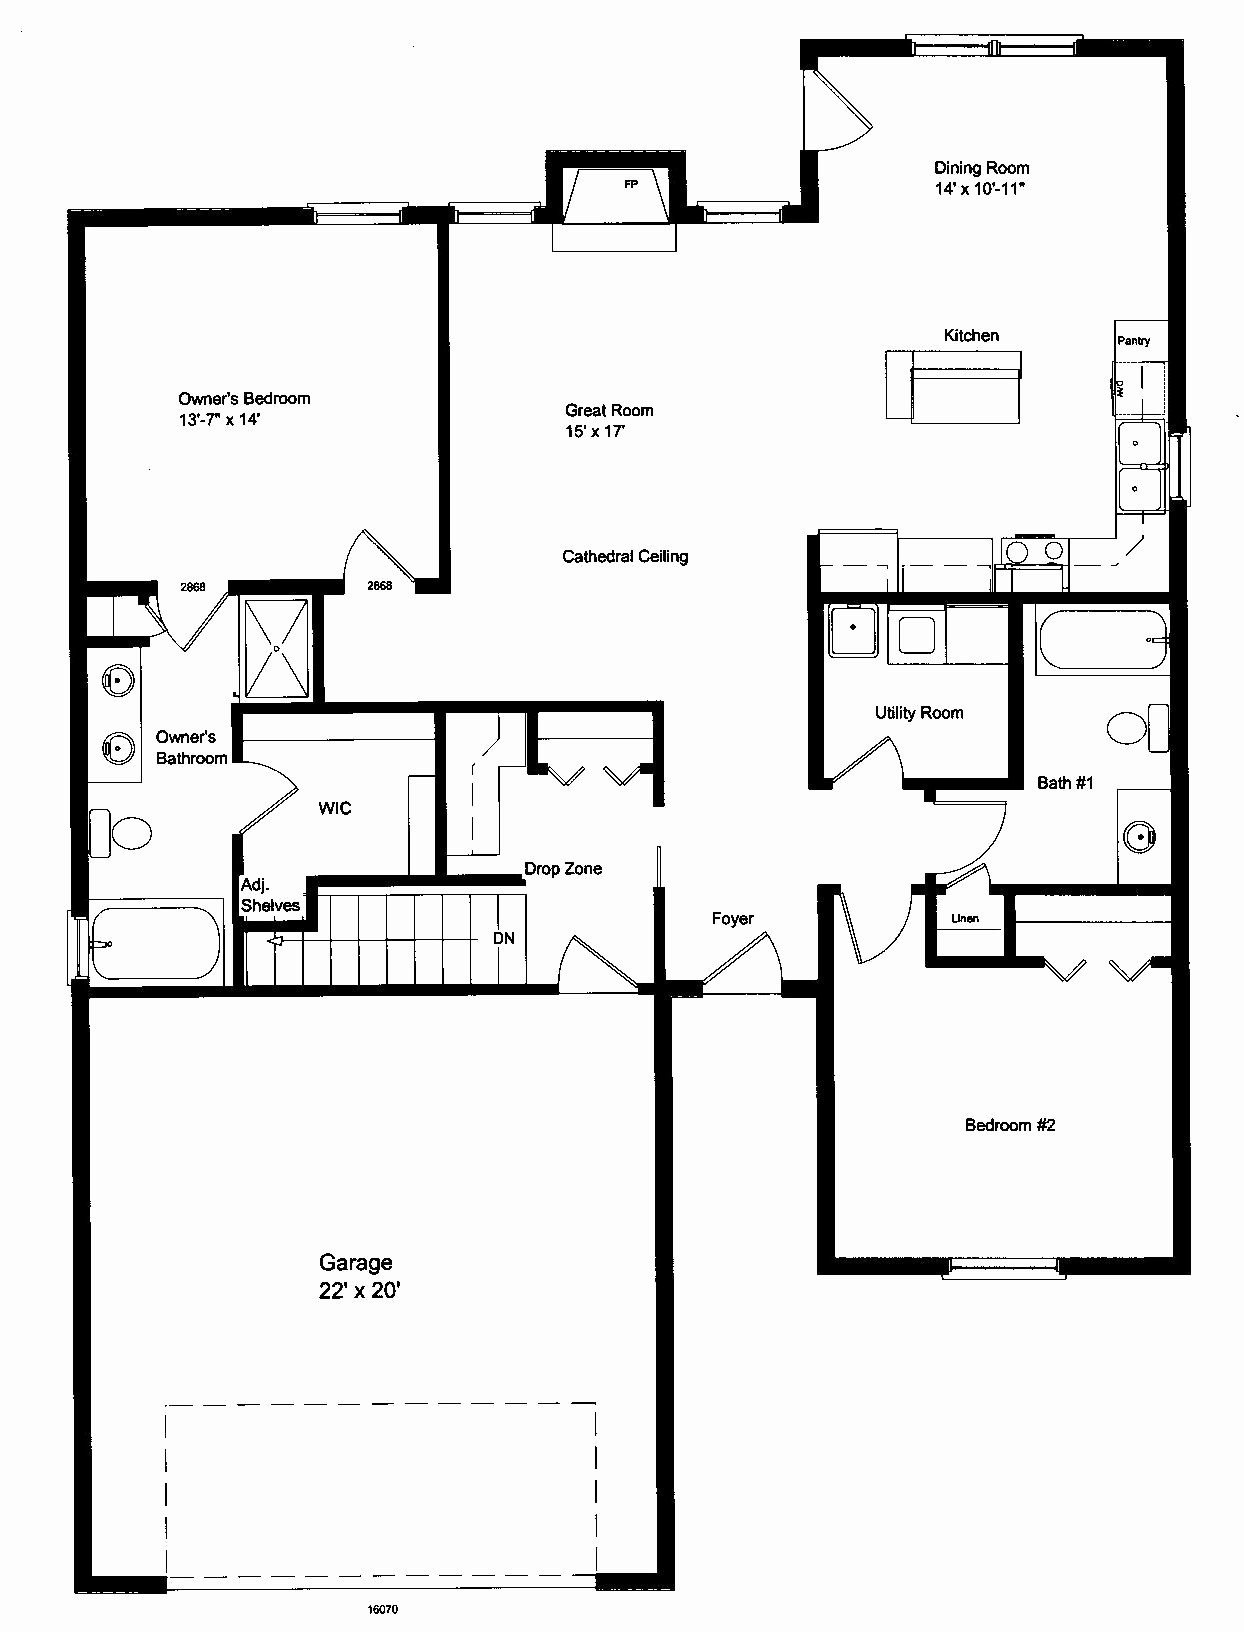 One Bedroom House Plans with Garage Fresh Guest House Plans E Bedroom Designs E Bedroom Studio